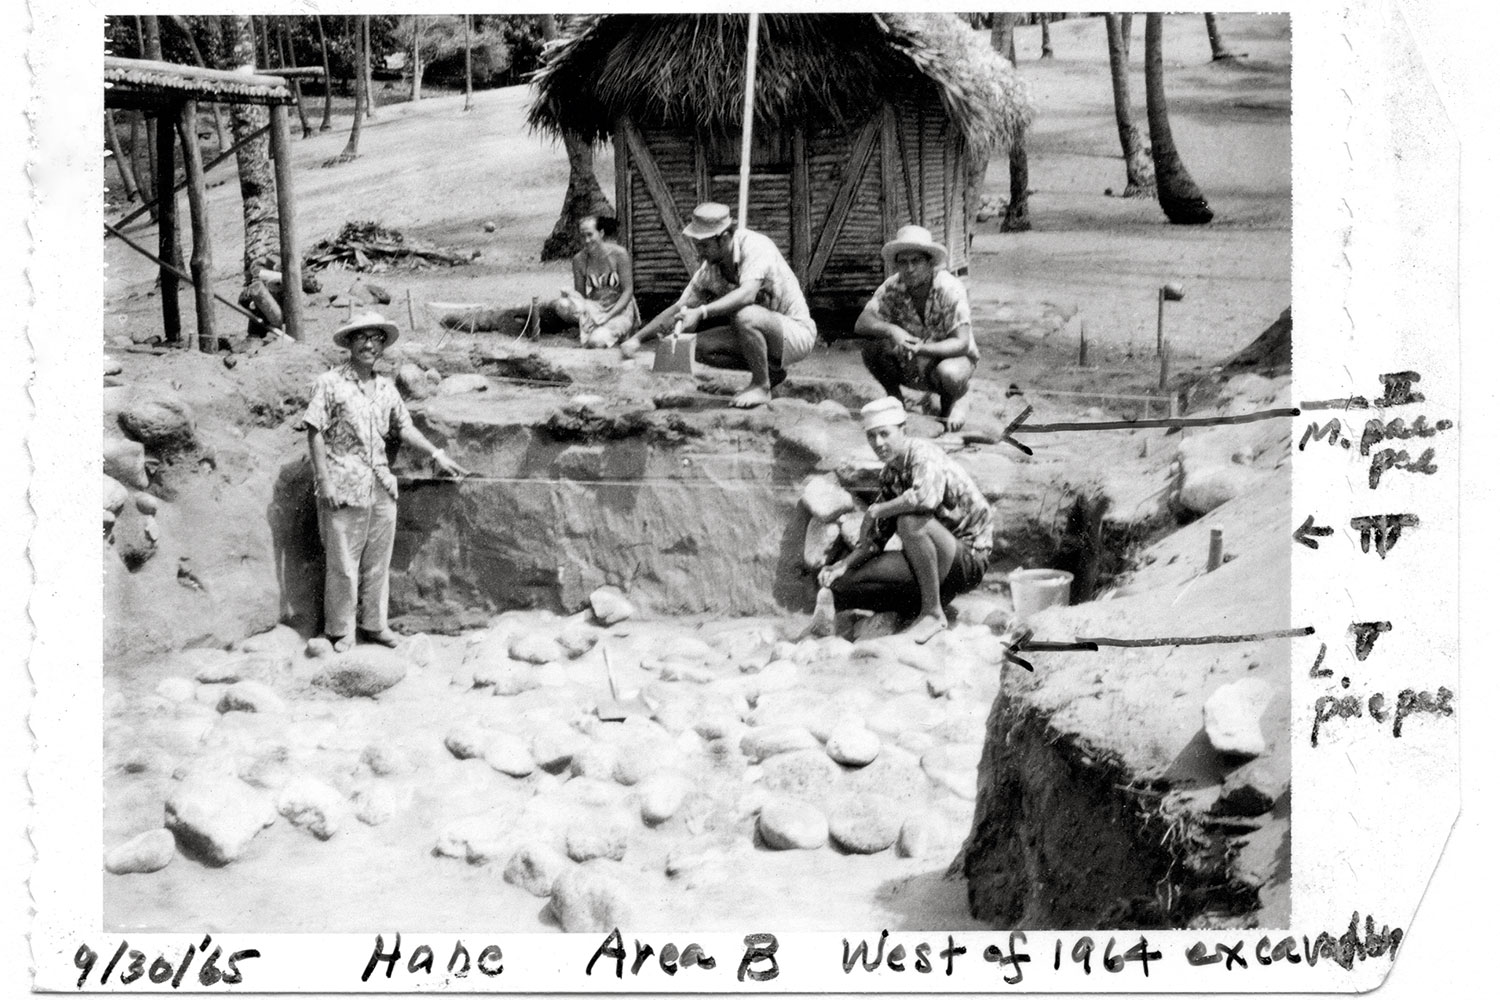 Black and white photo of men at an excavation site. Hand written text overlays image.